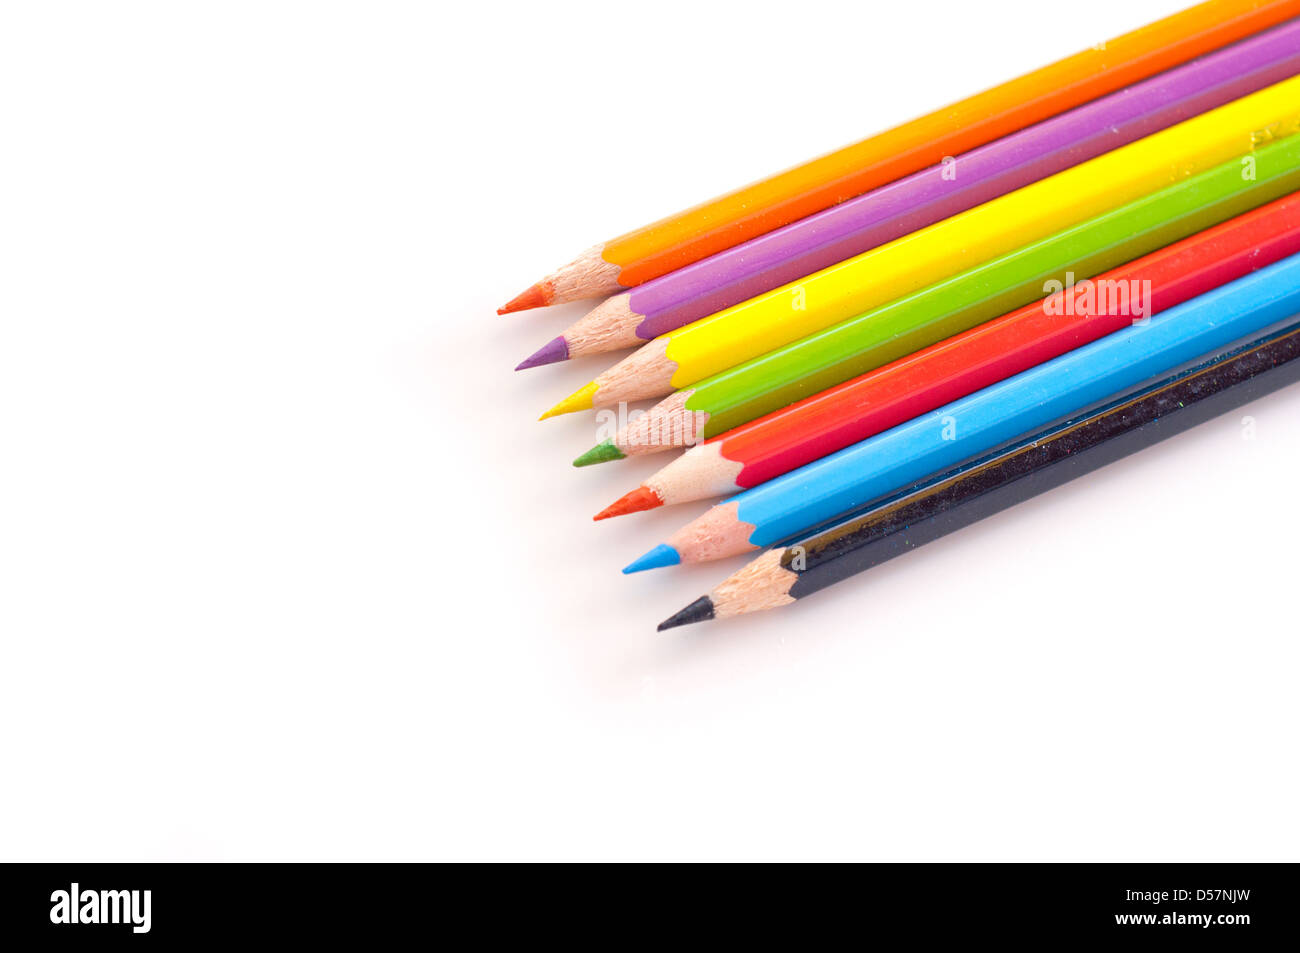 Colorful rainbow of pencil crayons or back to school image - Stock Image